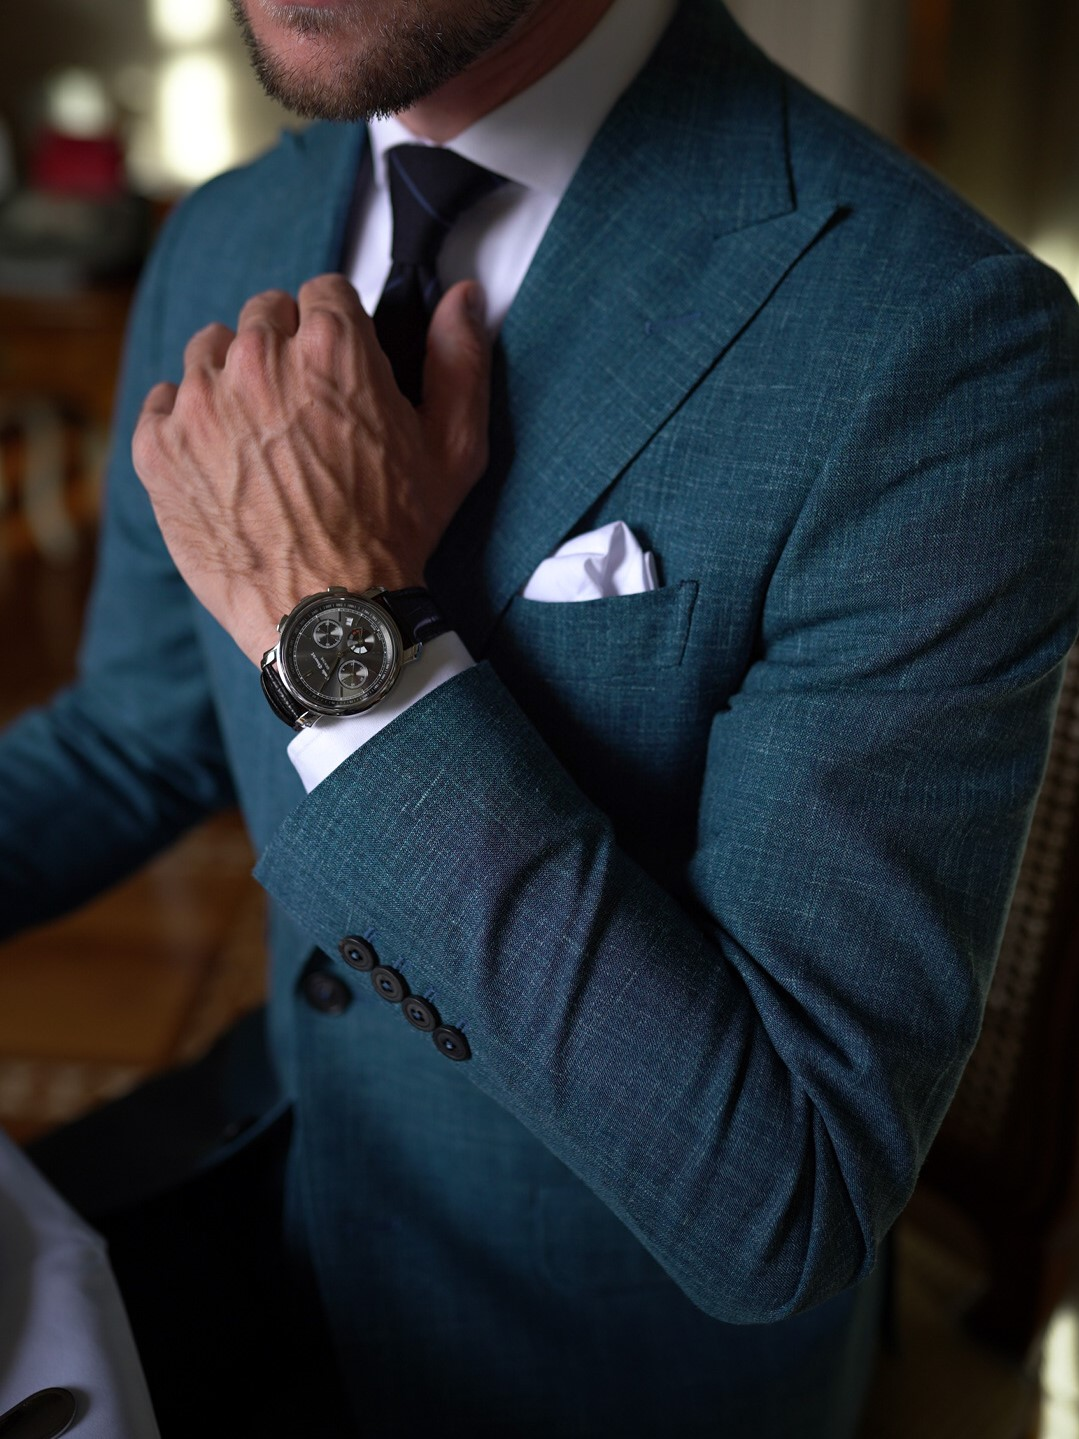 Details on a Dalbiondo's made to measure jacket